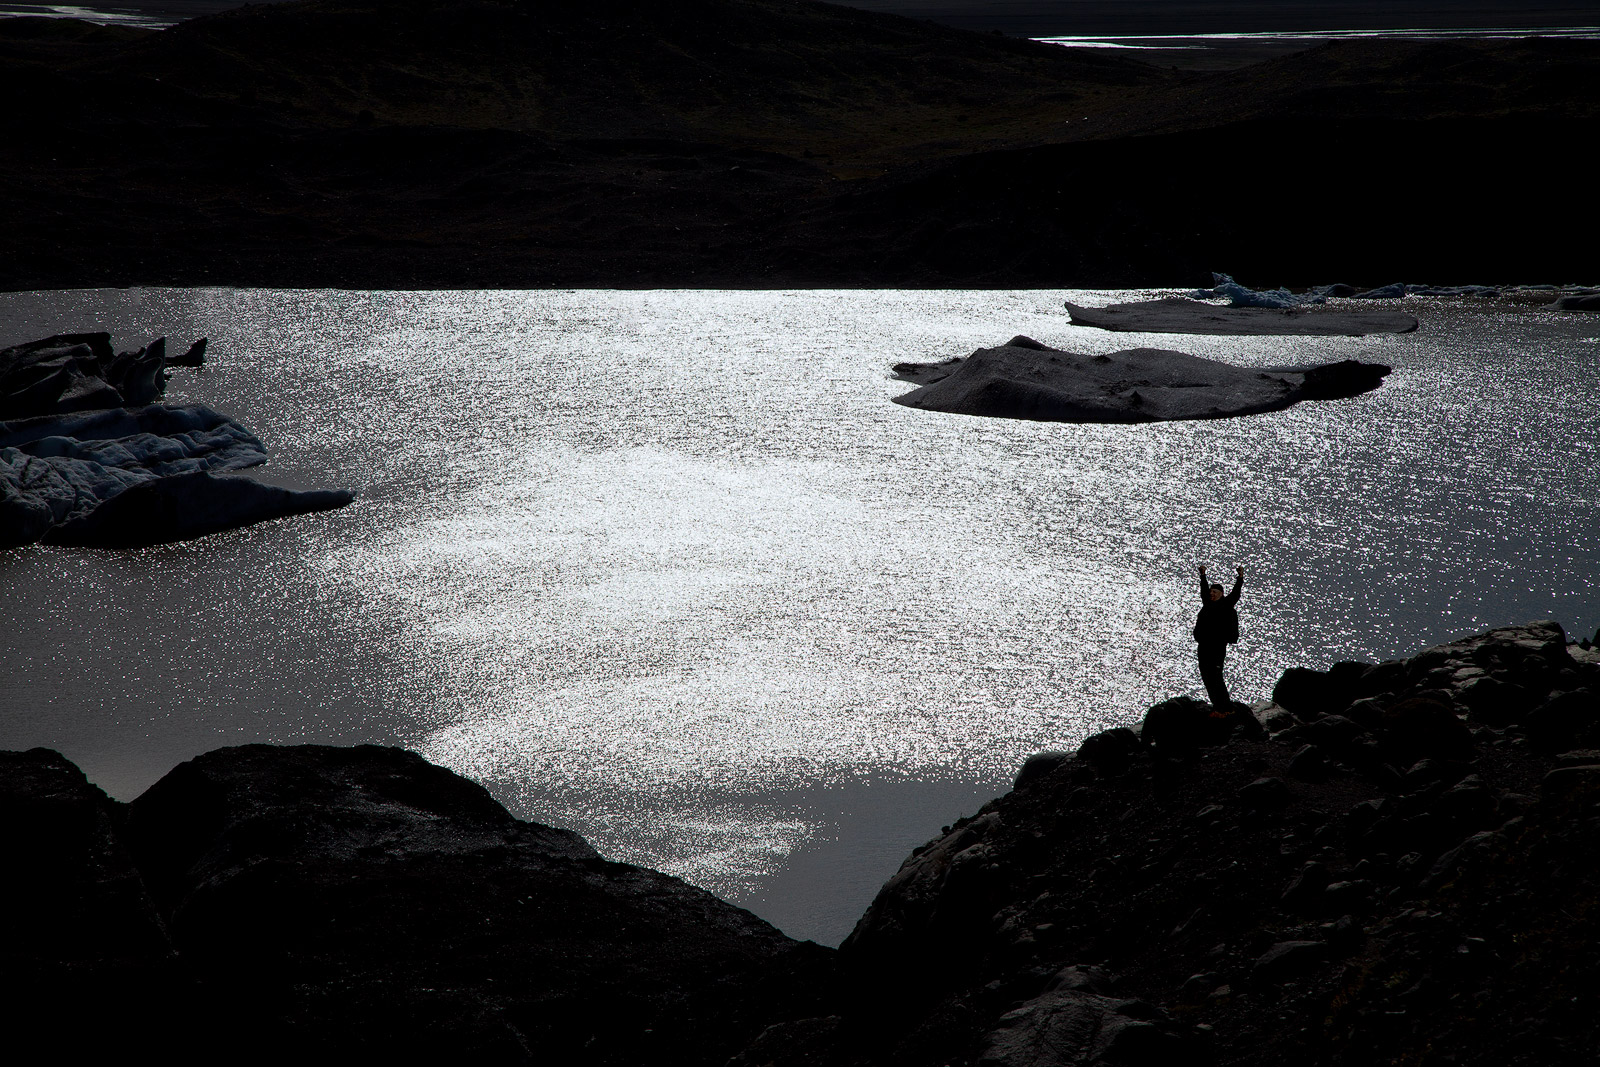 Silhouette of a hiker in front of a lake formed by glacier runoff